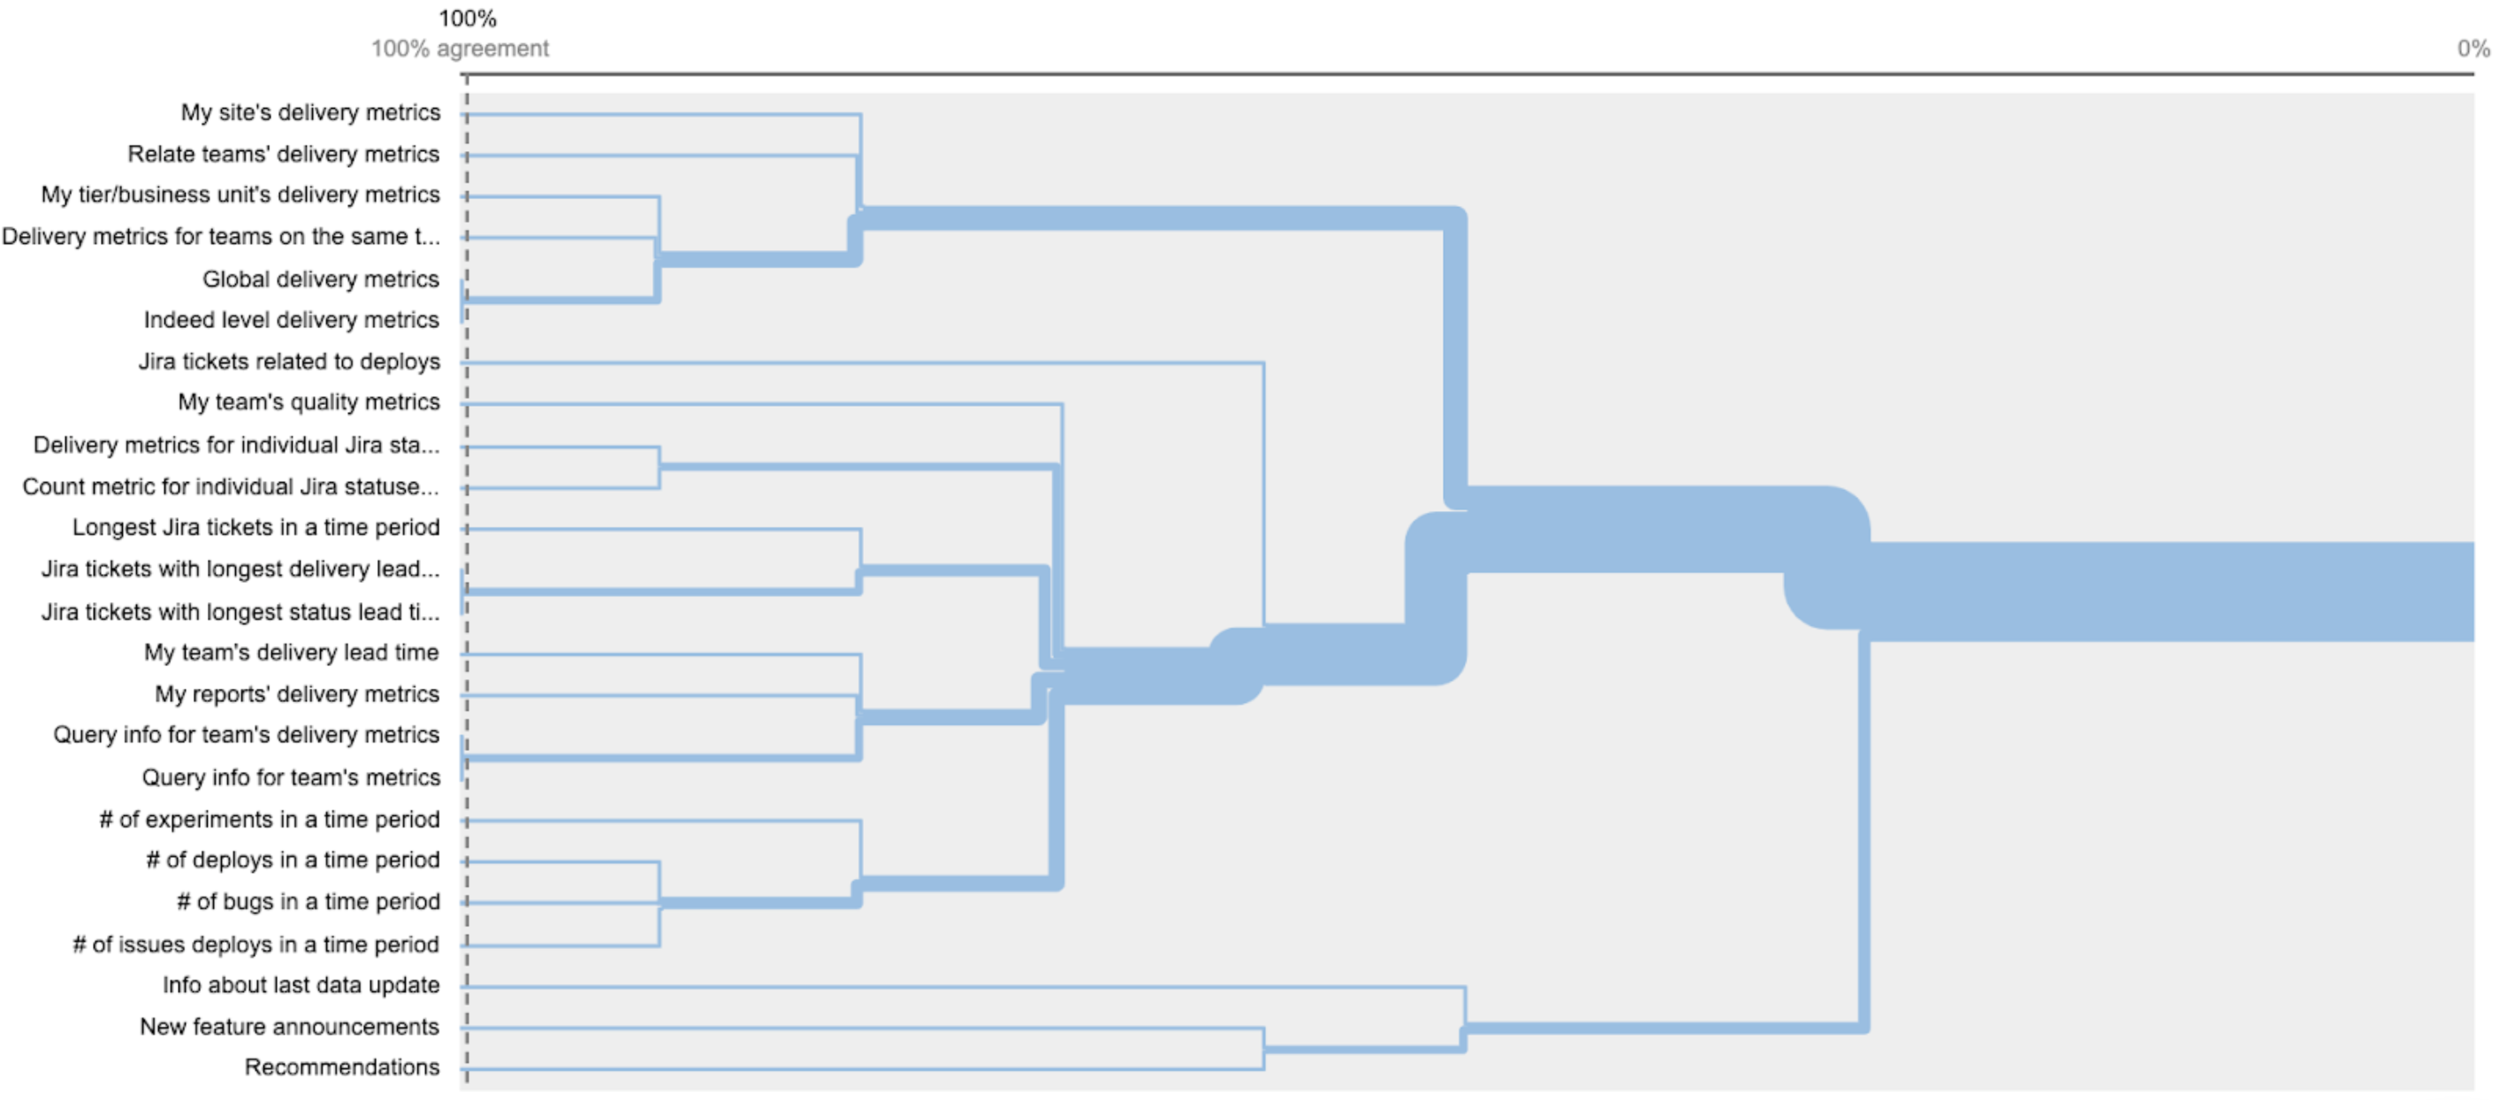 Dendrogram visualization to understand the level of agreement on the prospective categories